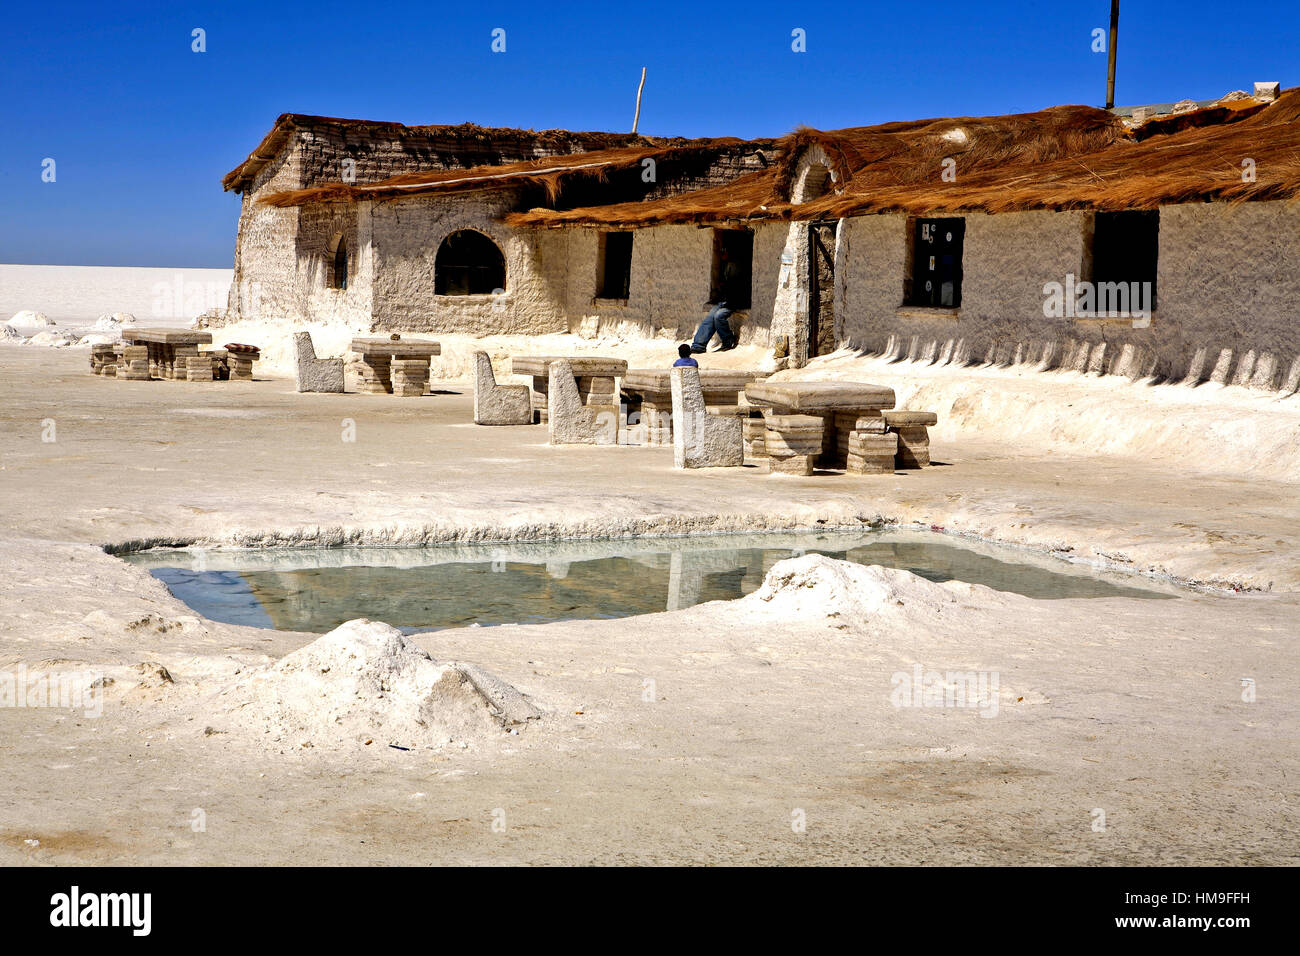 Salt hotel salar de uyuni bolivia stock photo royalty for Salar de uyuni hotel made of salt